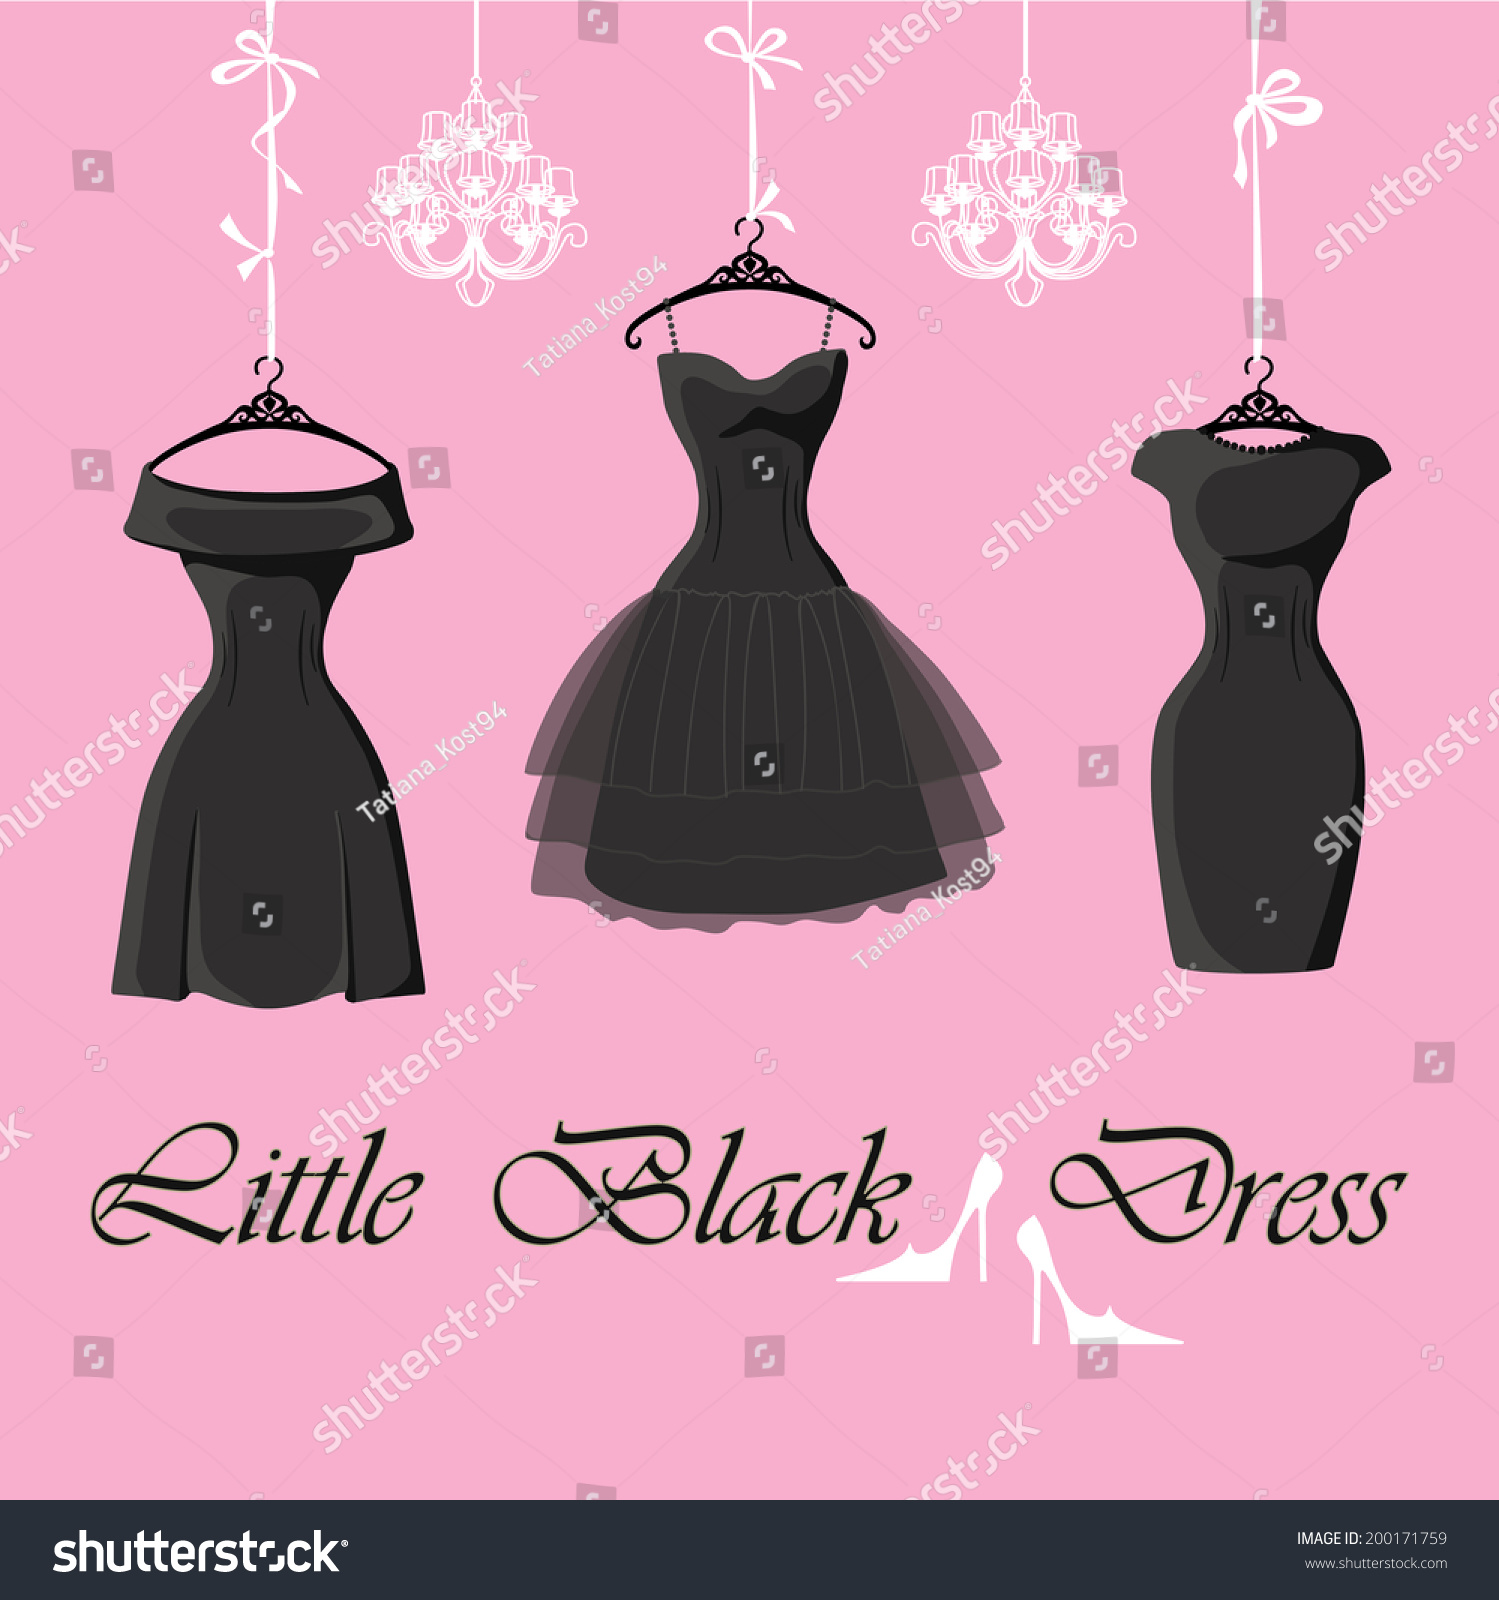 Black dress saying - The Composition Of The Three Female S Little Black Dresses Hang On Ribbons Composition With Chandeliers